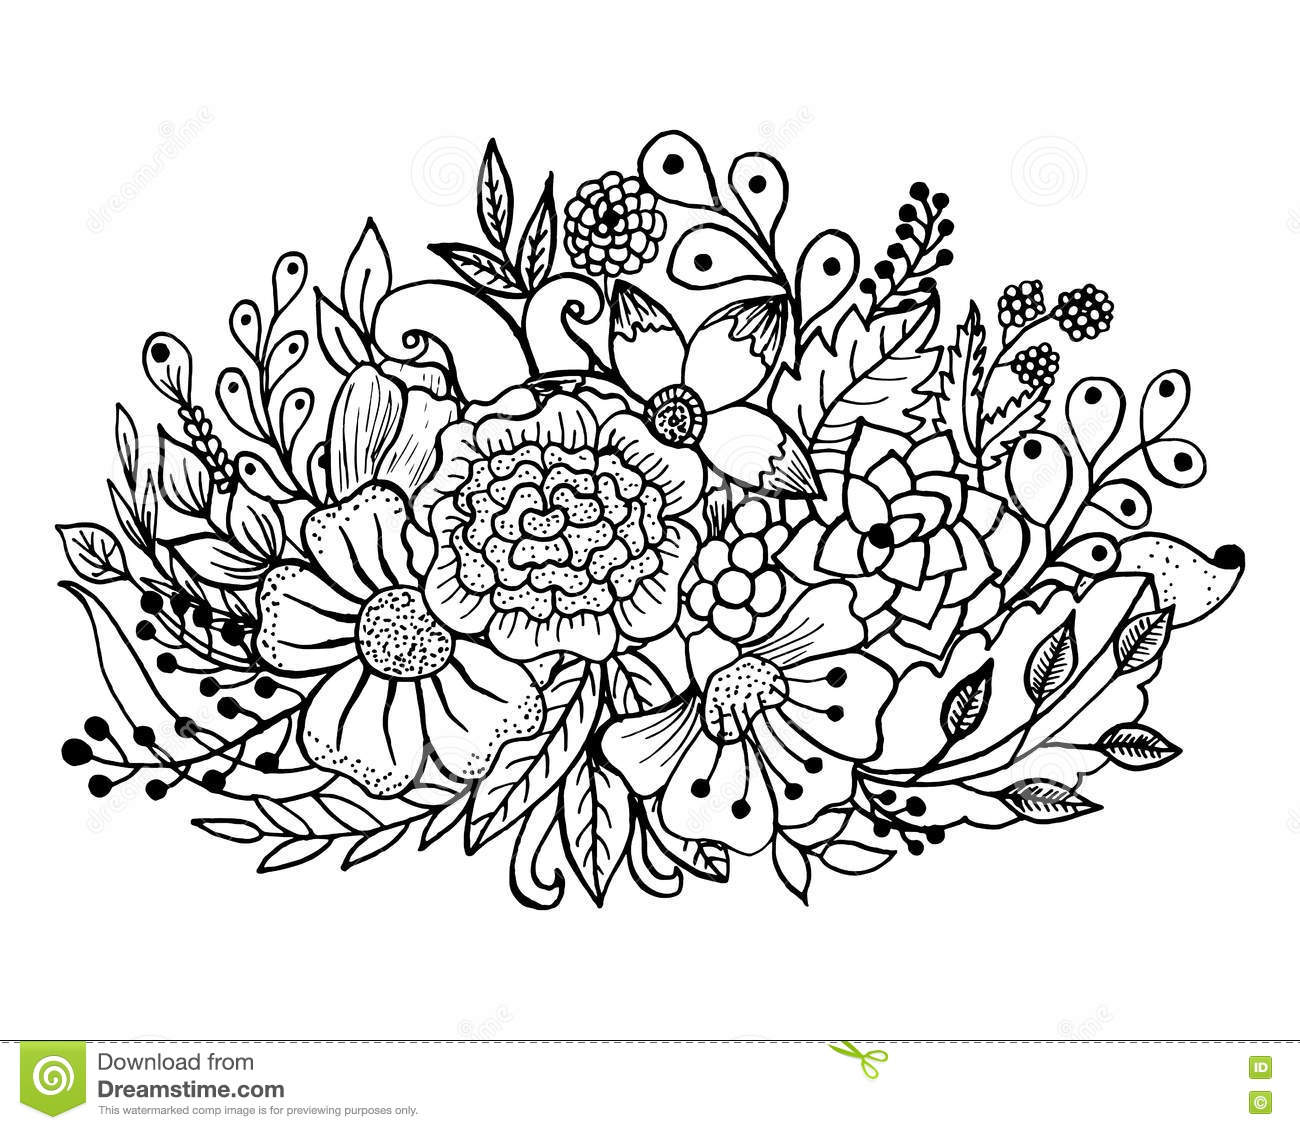 Coloring Page With Flowers And Leaves Stock Vector ...